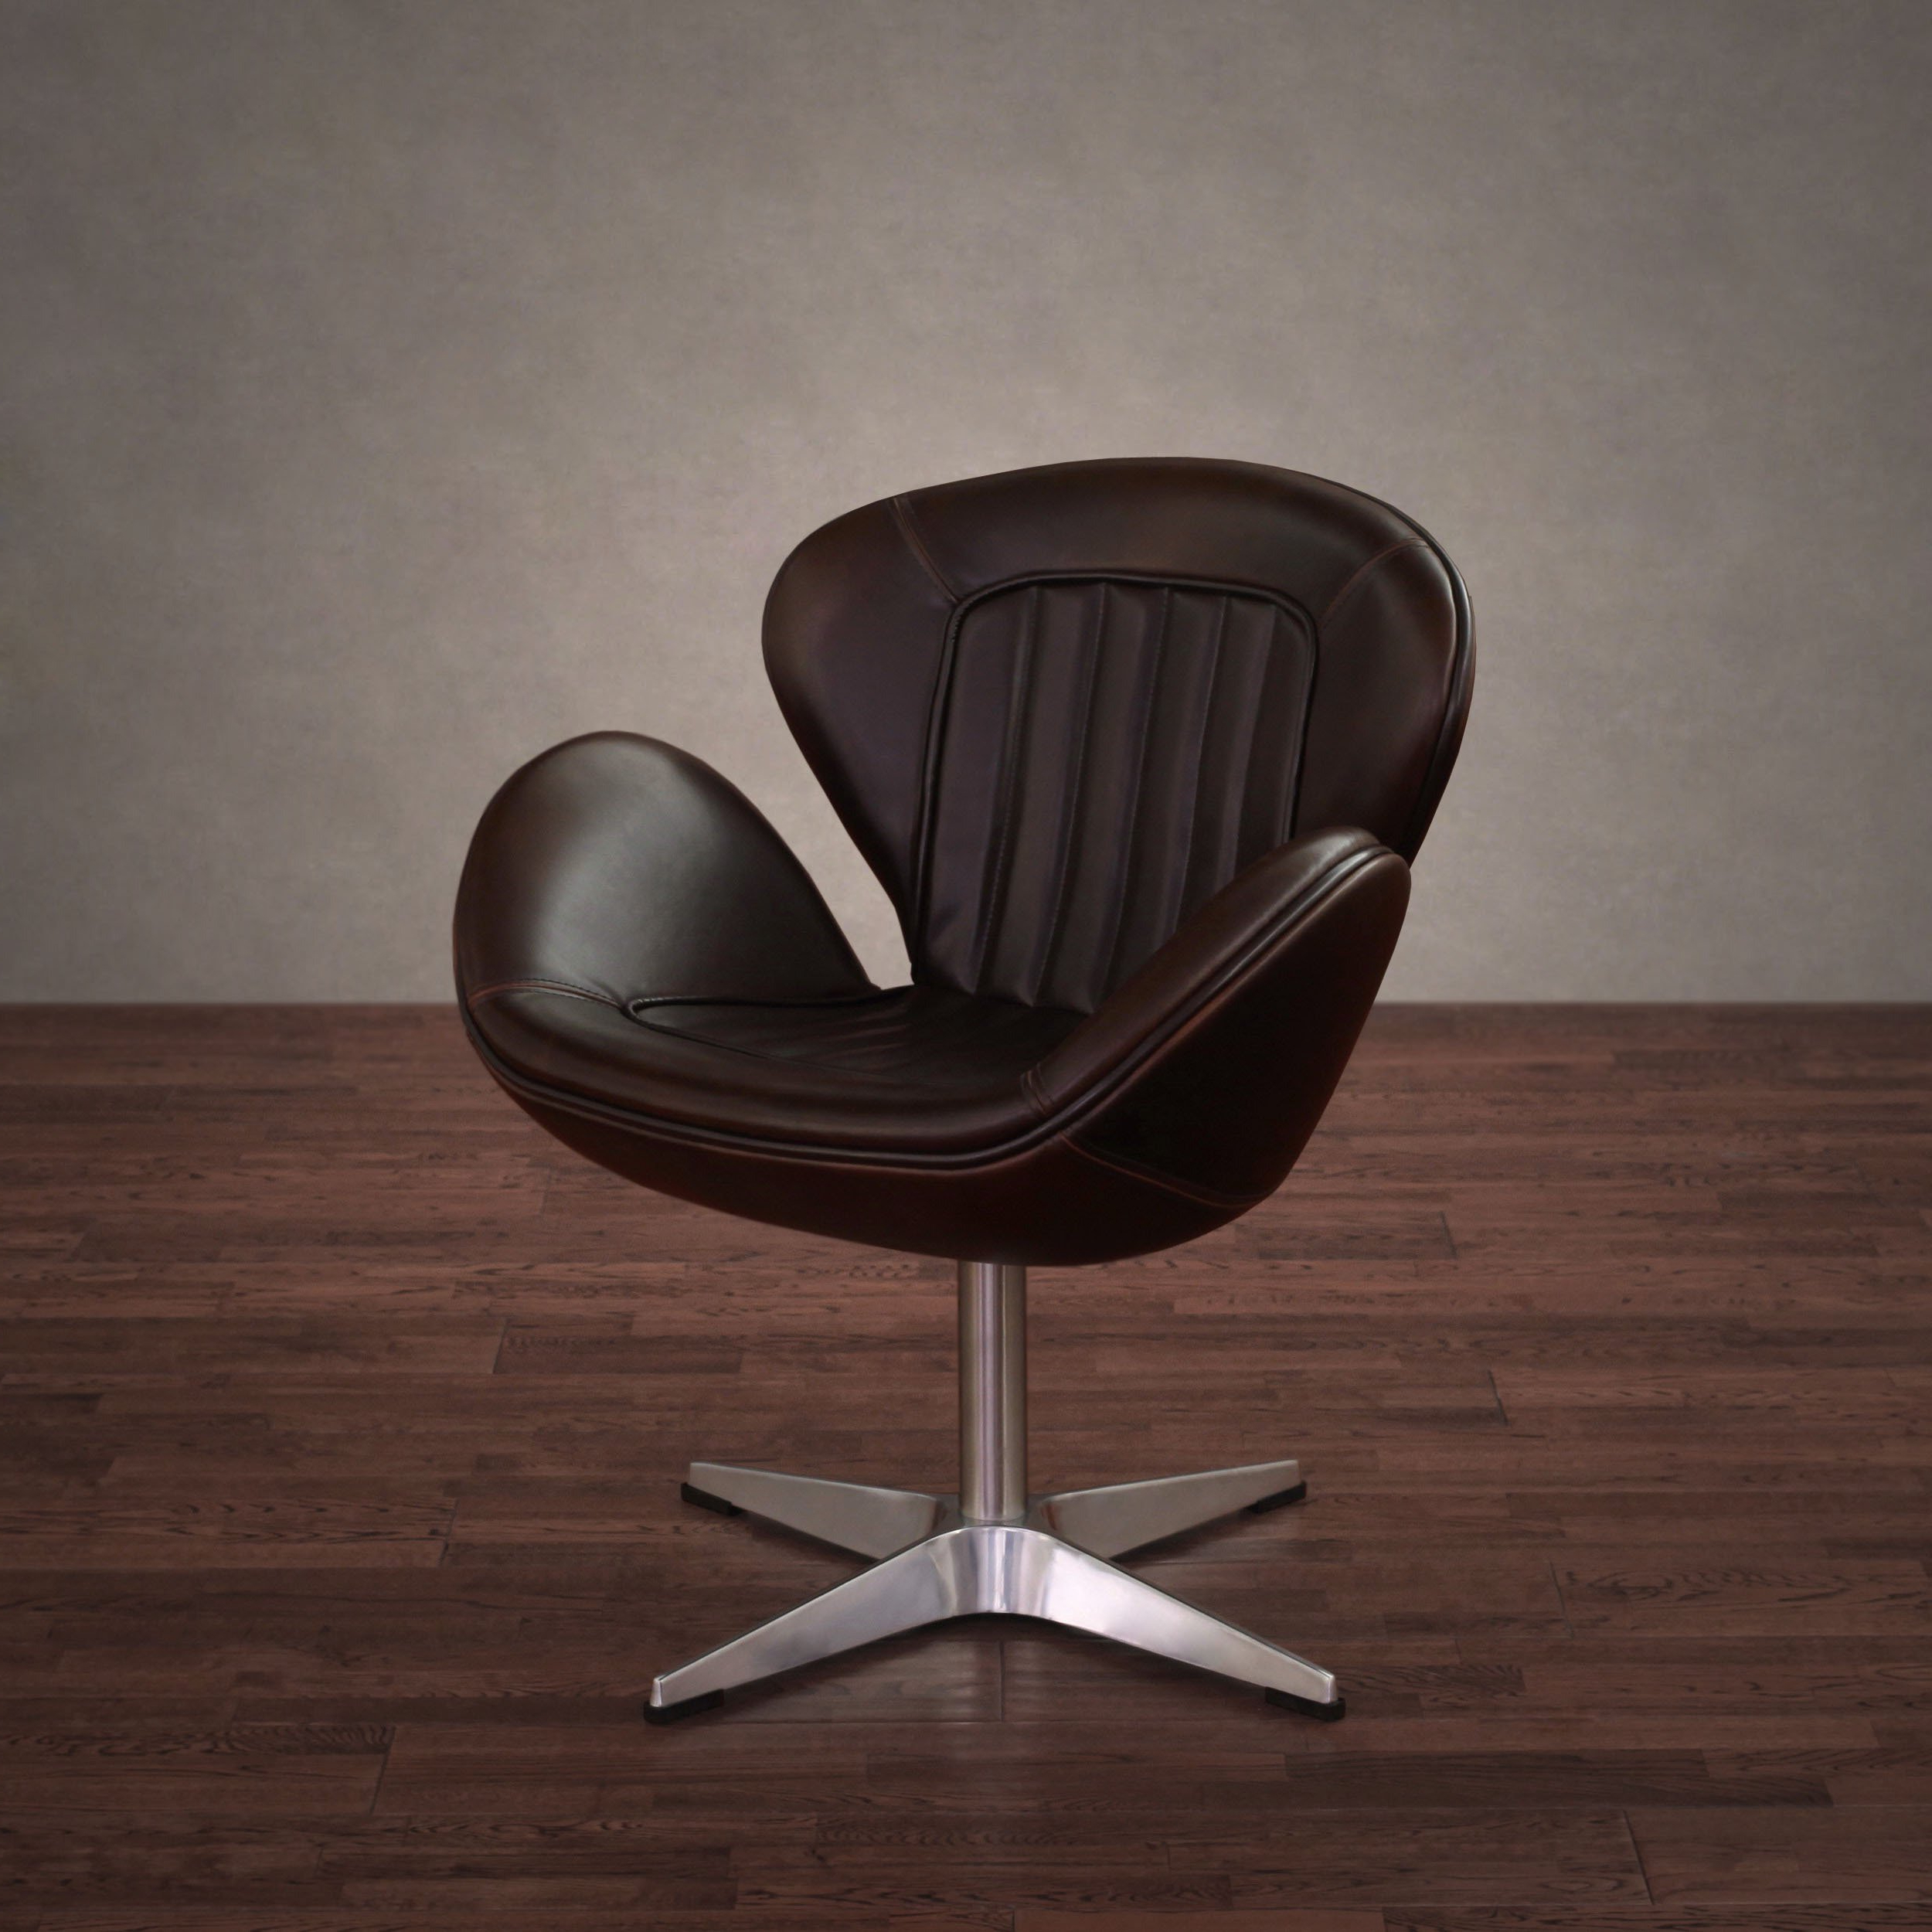 Shop Amelia Vintage Tobacco Leather Swivel Chair – Free Shipping Within Recent Swivel Tobacco Leather Chairs (Gallery 2 of 20)